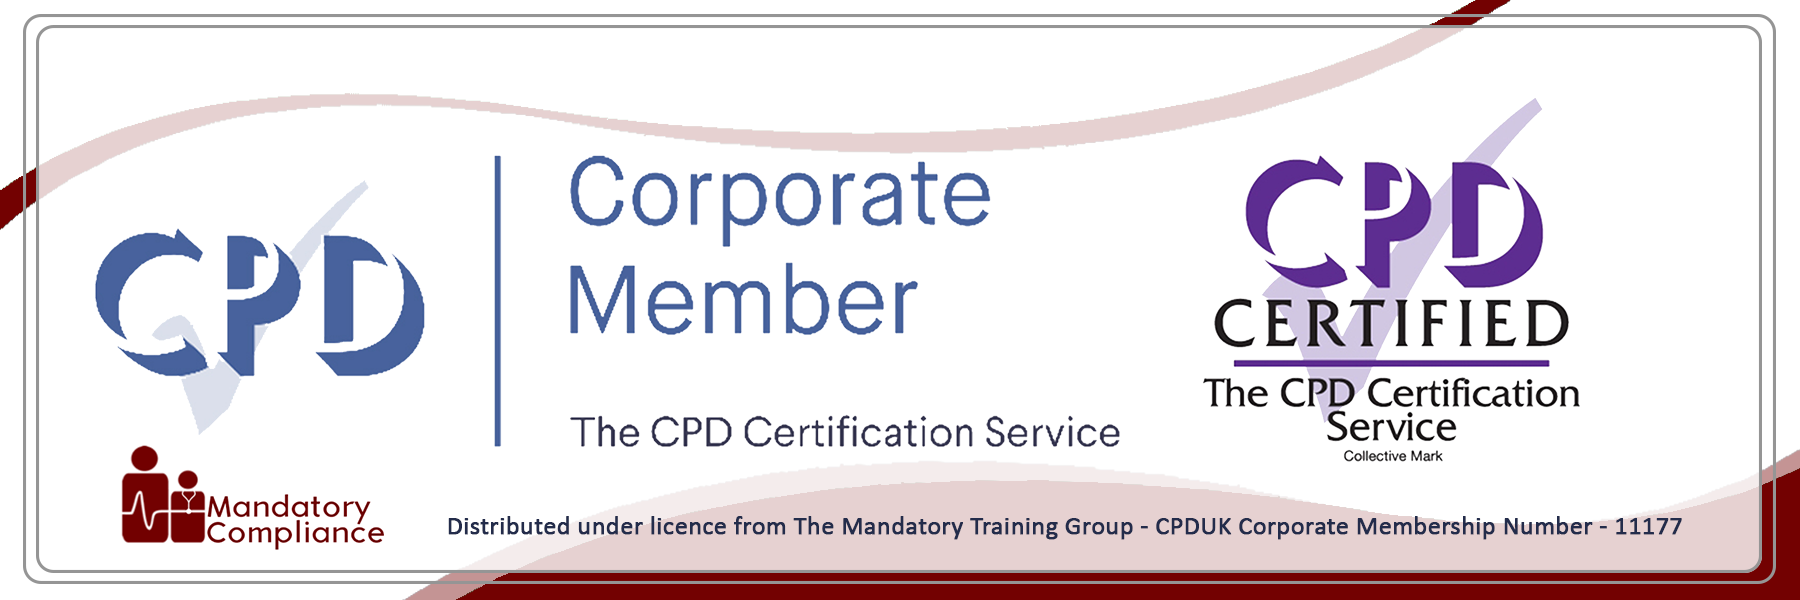 Depression Awareness - Online-Training-Course-CPD-Accredited-Mandatory-Compliance-UK-